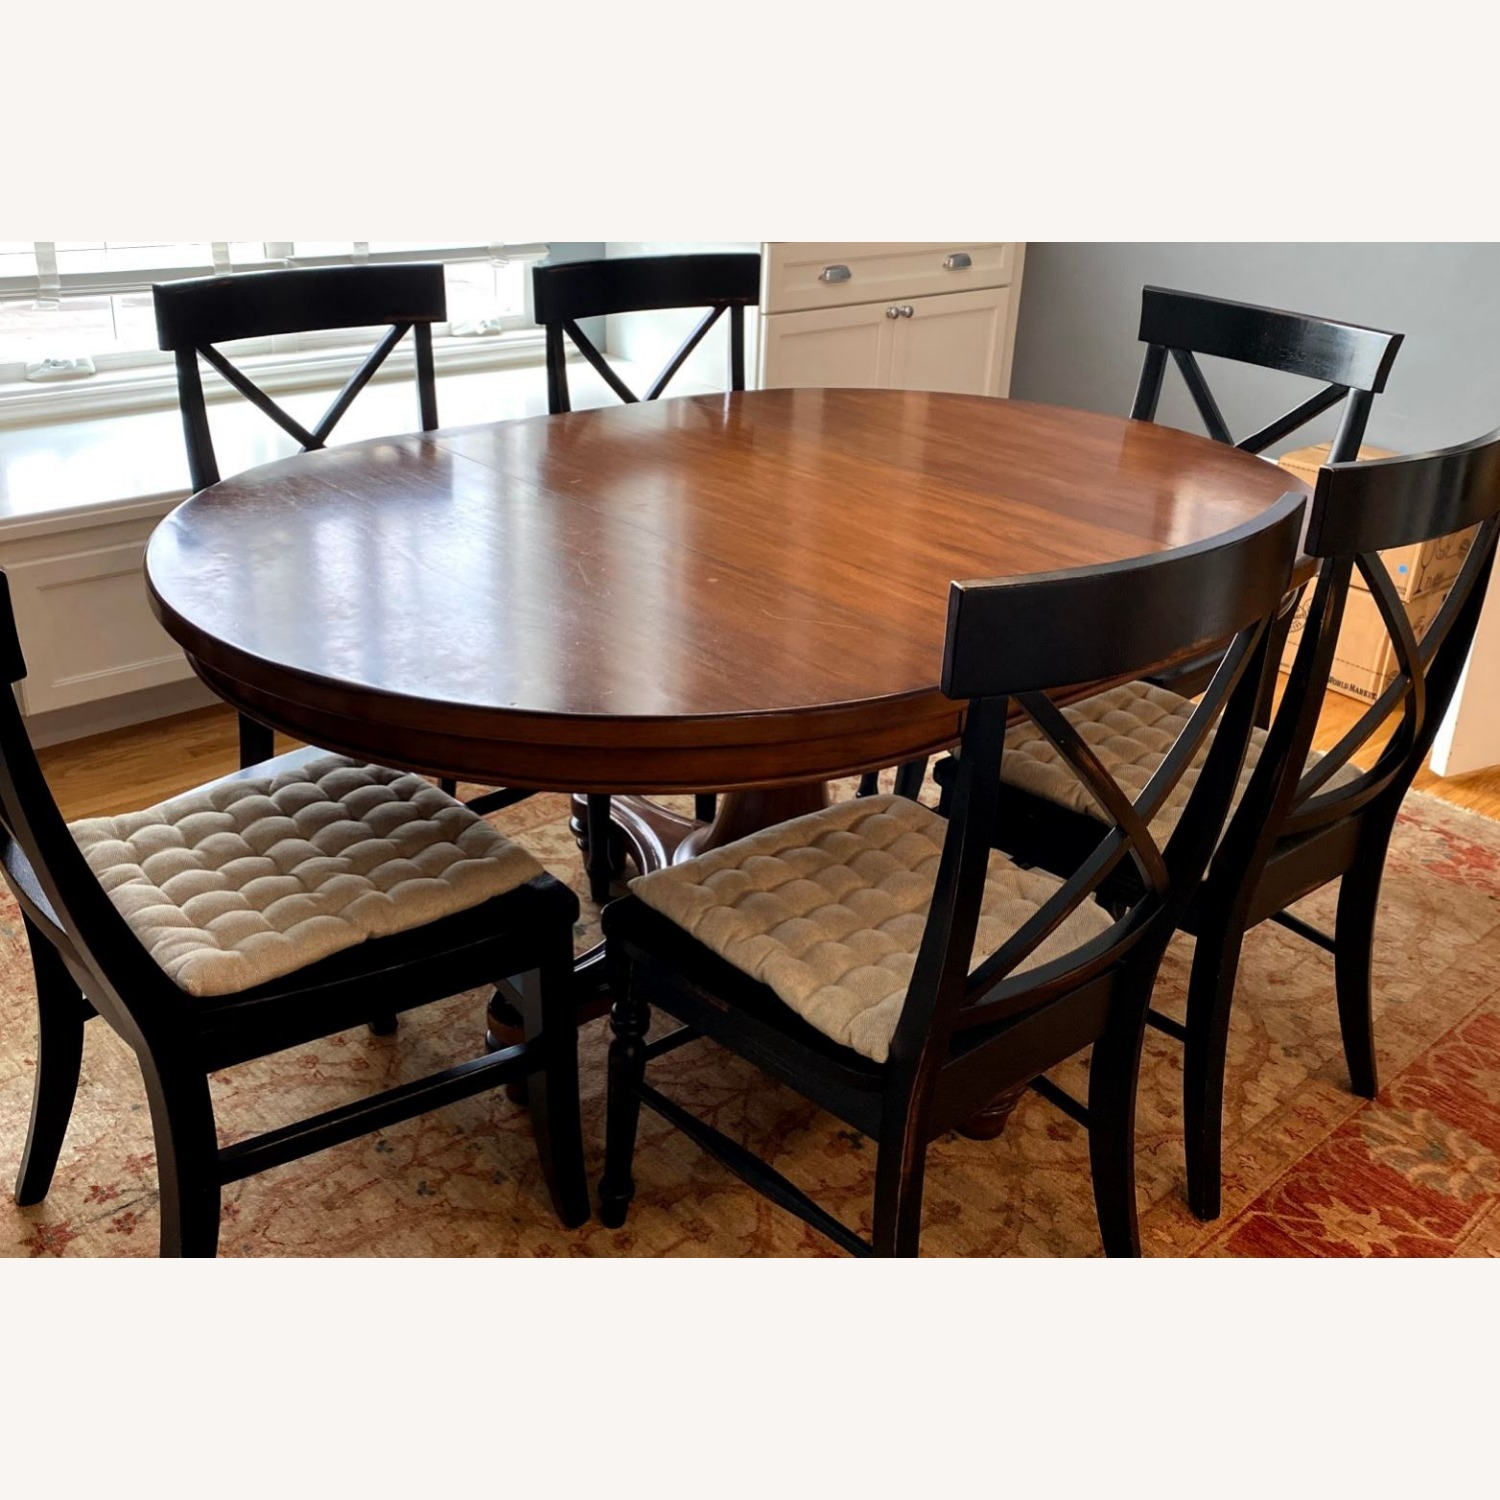 Pottery Barn Pedestal Extending Dining Table - image-2